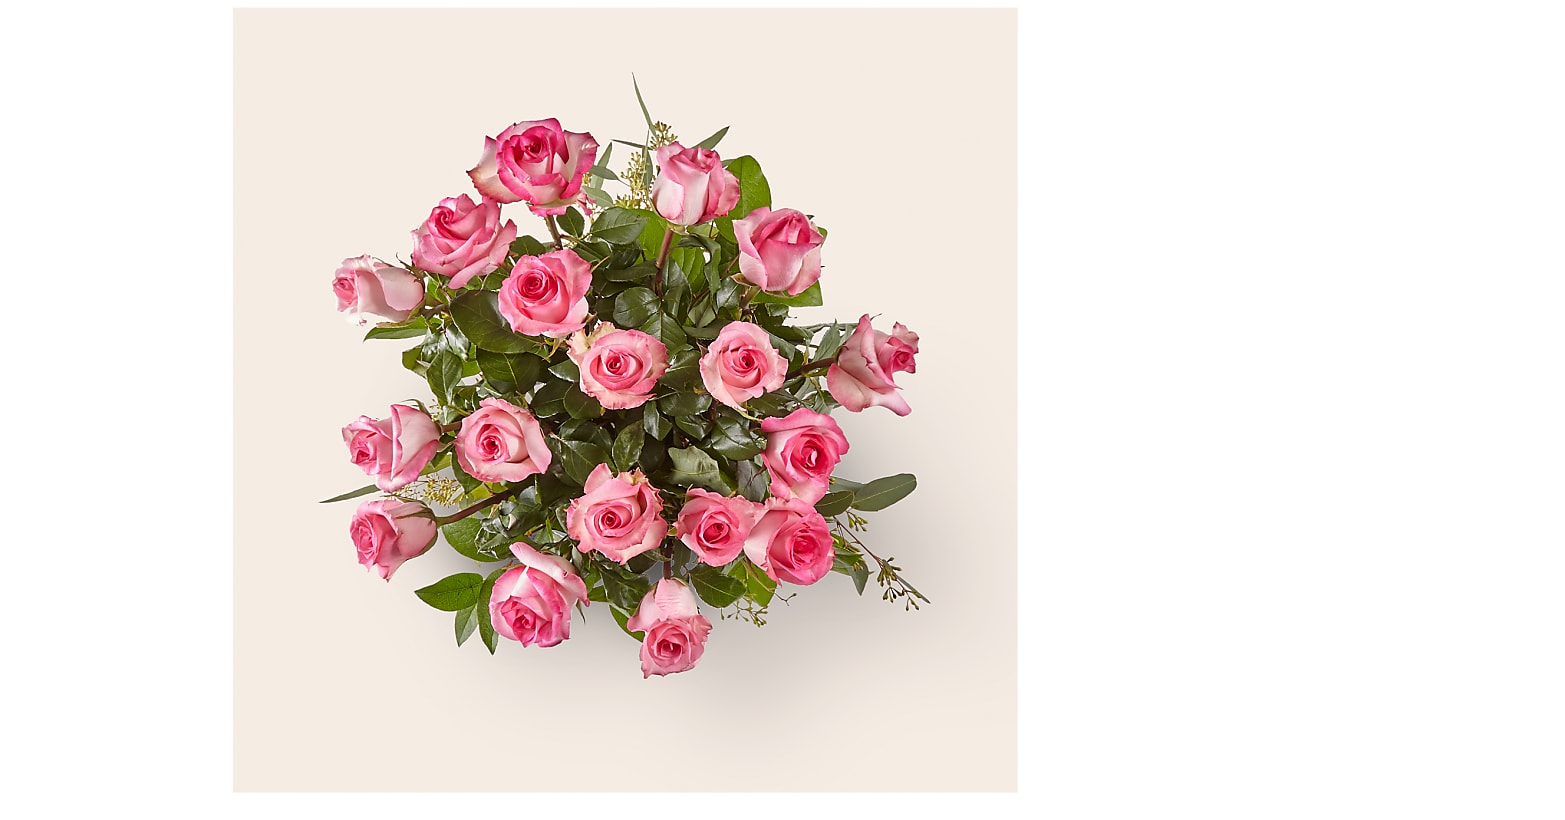 The Long Stem Pink Rose Bouquet - Image 2 Of 2